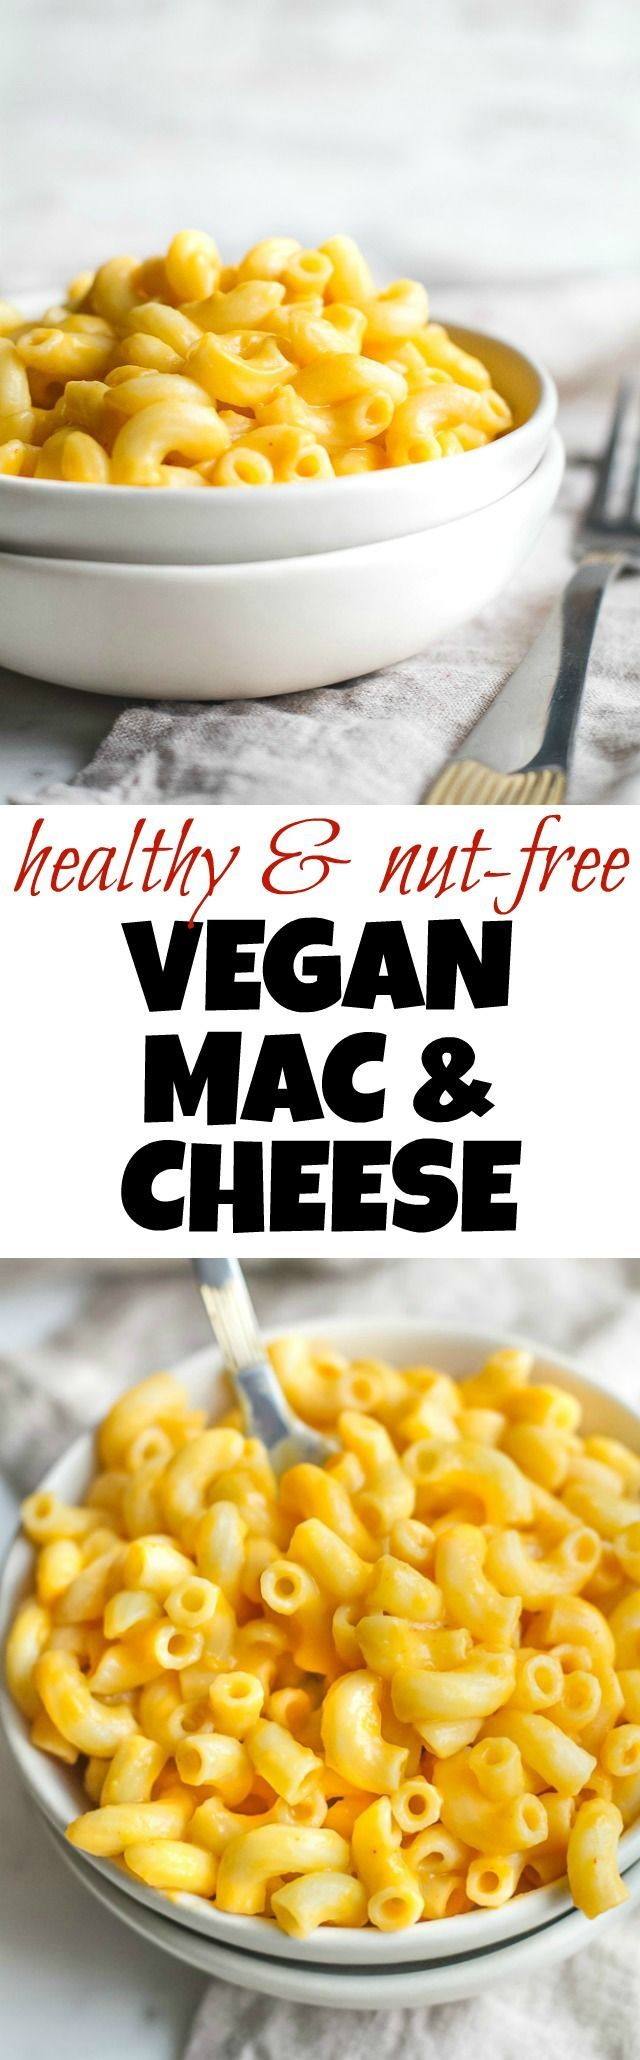 Healthy Vegan Mac Cheese Running With Spoons Recipe In 2020 Vegan Mac And Cheese Dairy Free Recipes Vegan Dishes